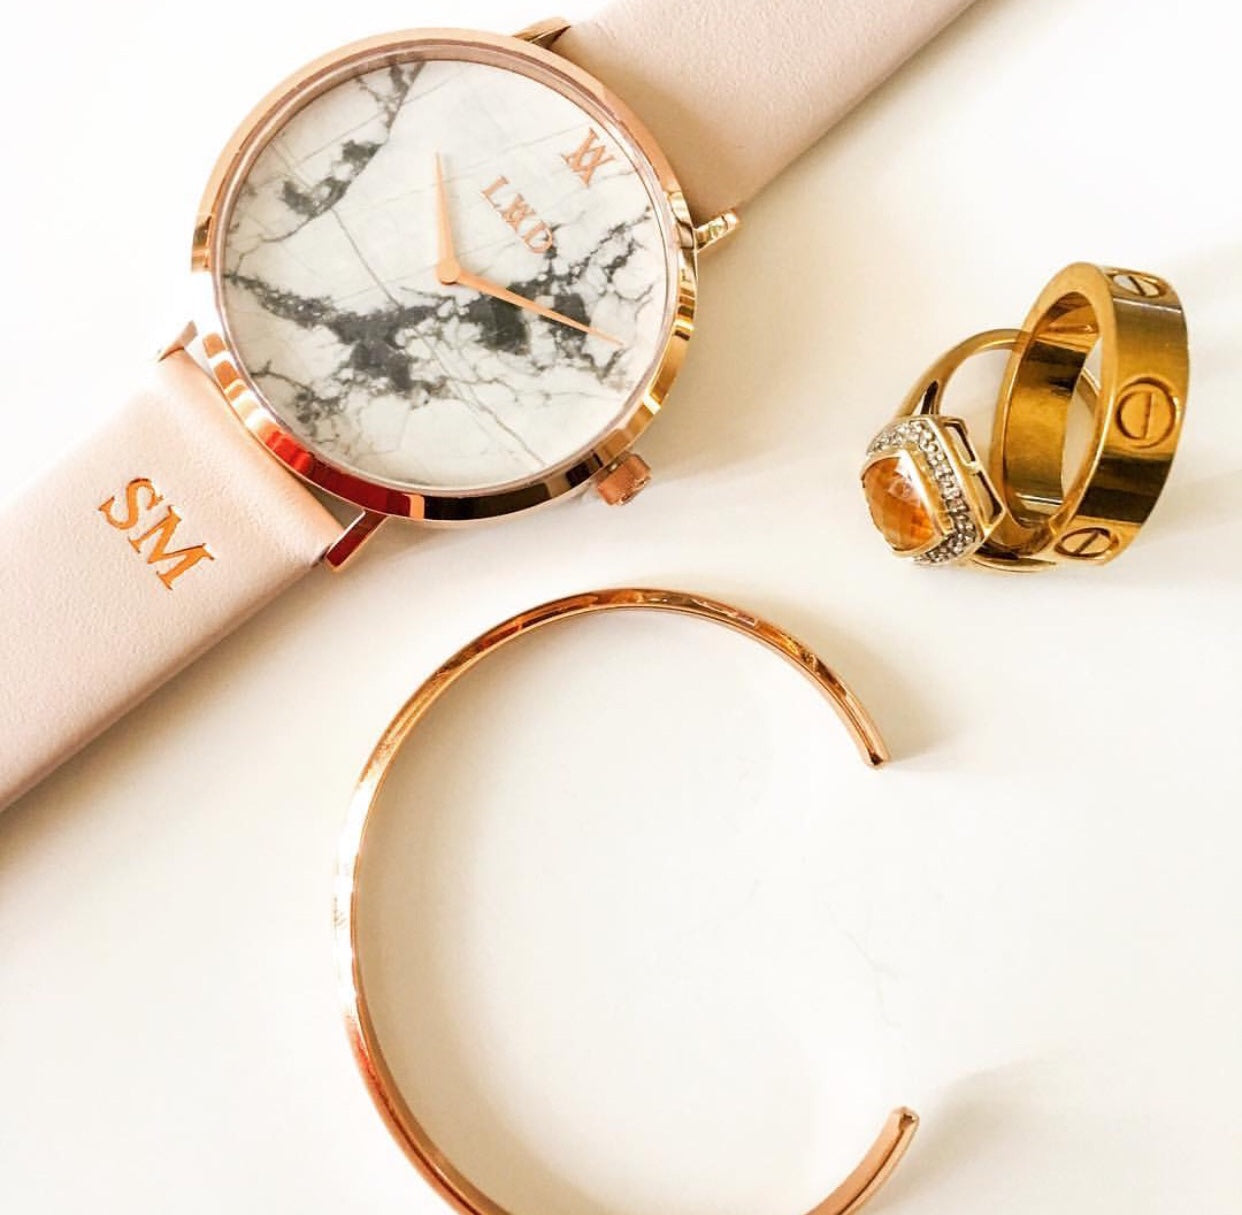 rose gold case with white marble dial watch with monogrammed nude pink strap flatlay with jewellery